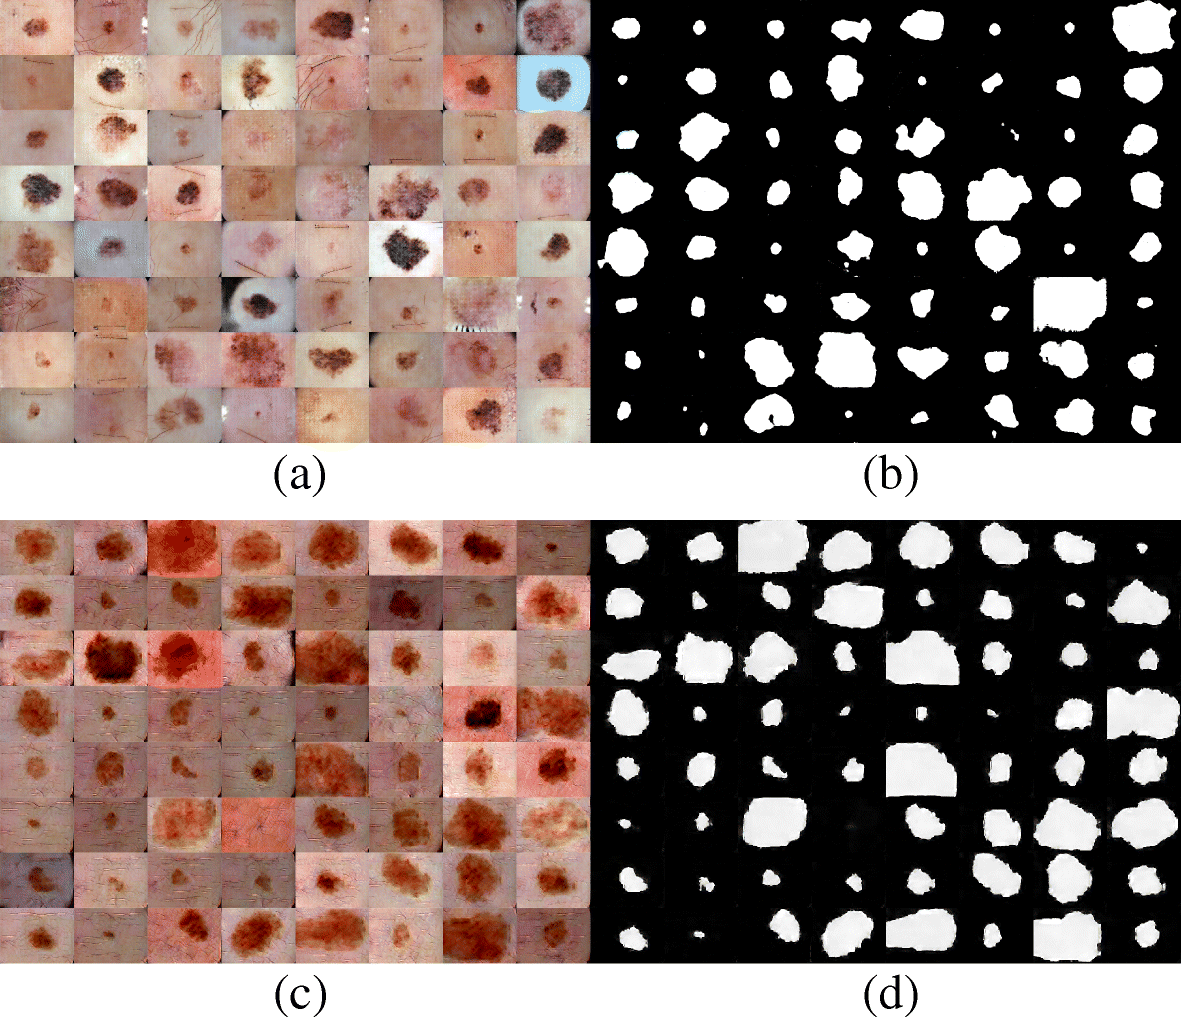 Augmenting data with GANs to segment melanoma skin lesions